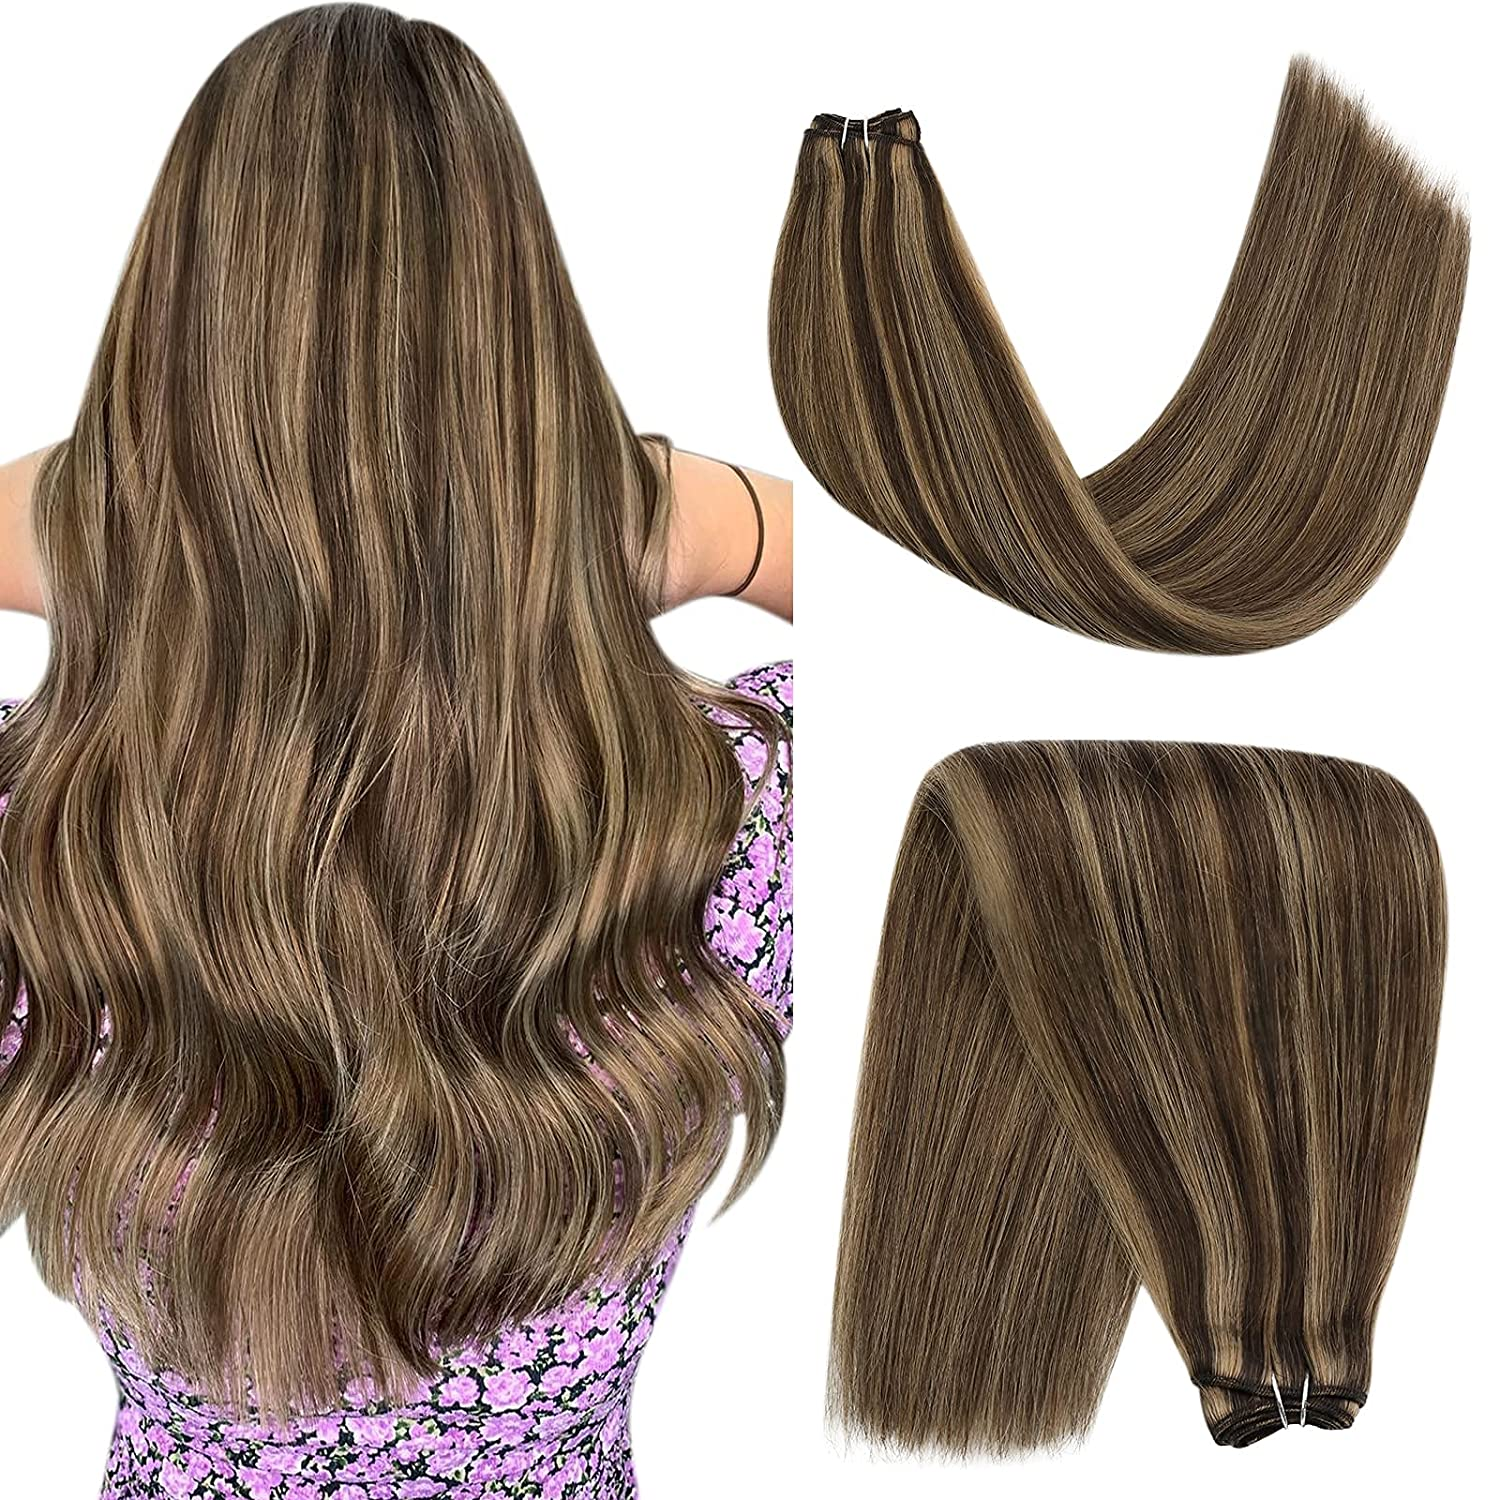 YoungSee Weft Hair Extensions Human Free shipping / New 14inch Sew Exte in Max 74% OFF